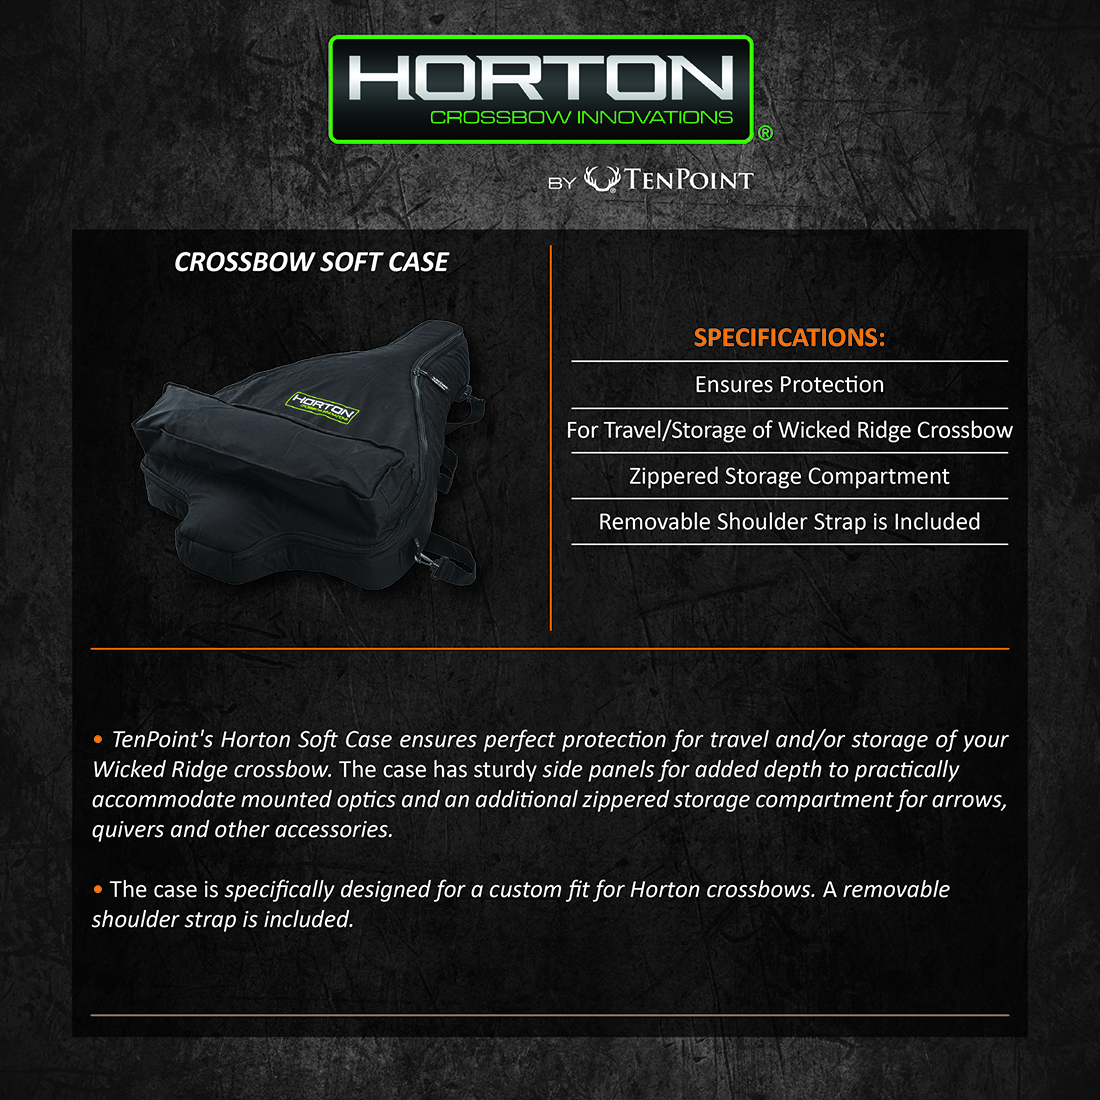 Horton_Crossbow_Soft_Case_Product_Description